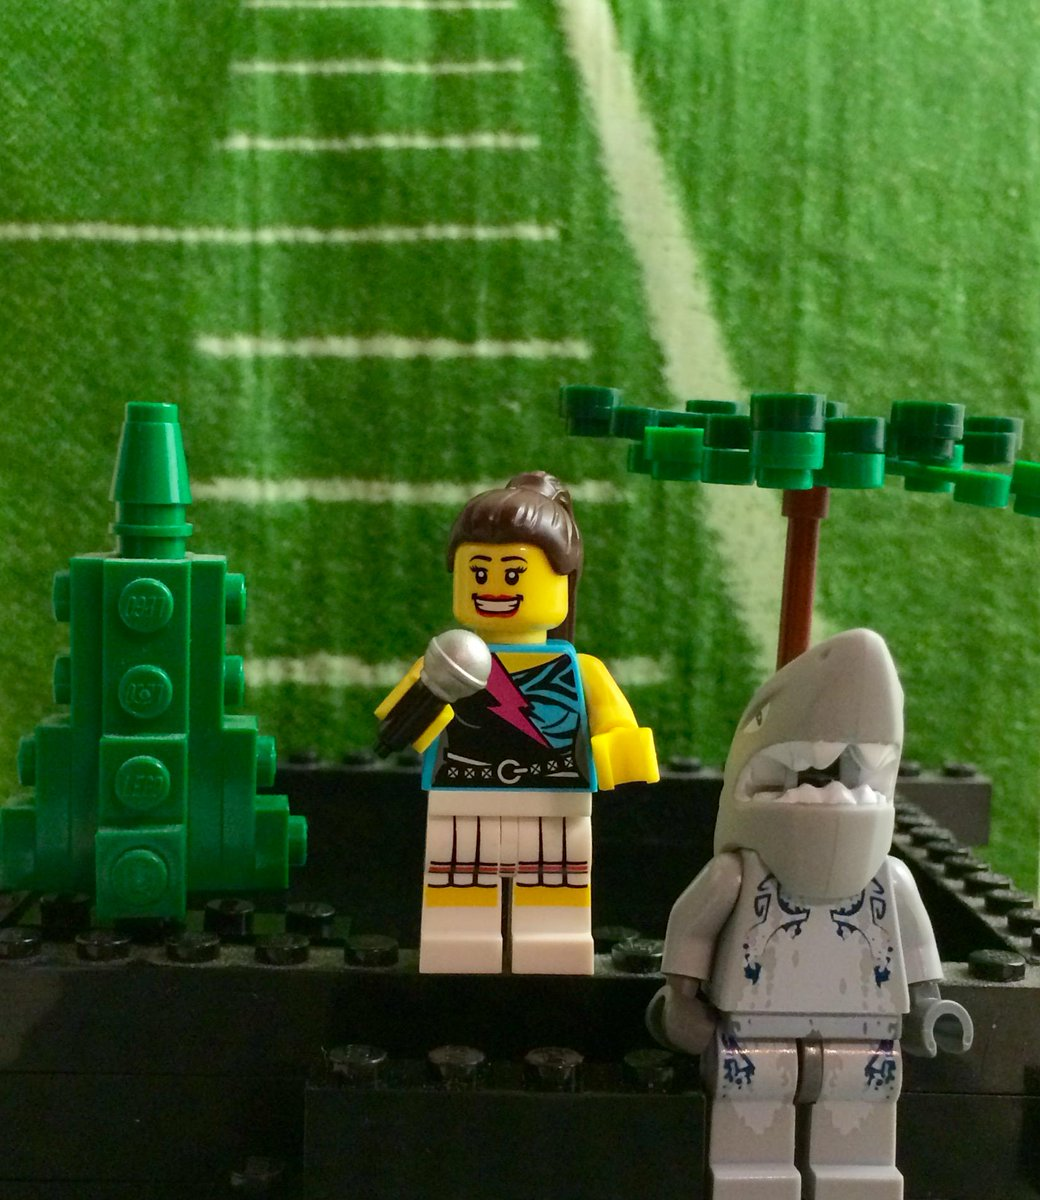 @darth @conz With many heroes in #SB49, we're compelled to immortalize one in LEGO Form: Dancing Shark #SuperBowl http://t.co/9rNeyTvyPz